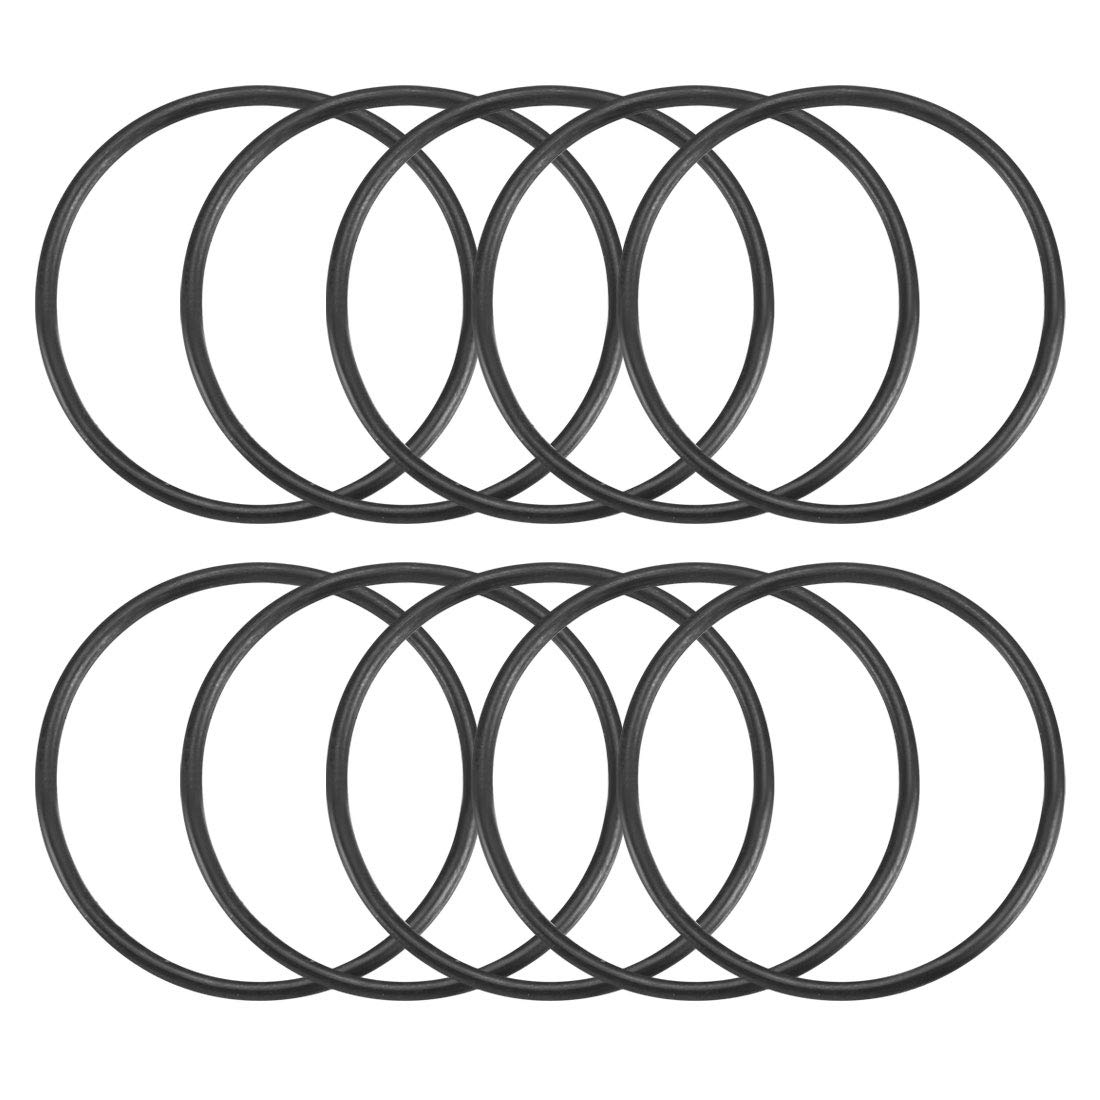 NBR 70A Shore Hardness Black Nitrile 36mm x 3mm 42mm OD Pack of 20 Rubber Metric O-Rings